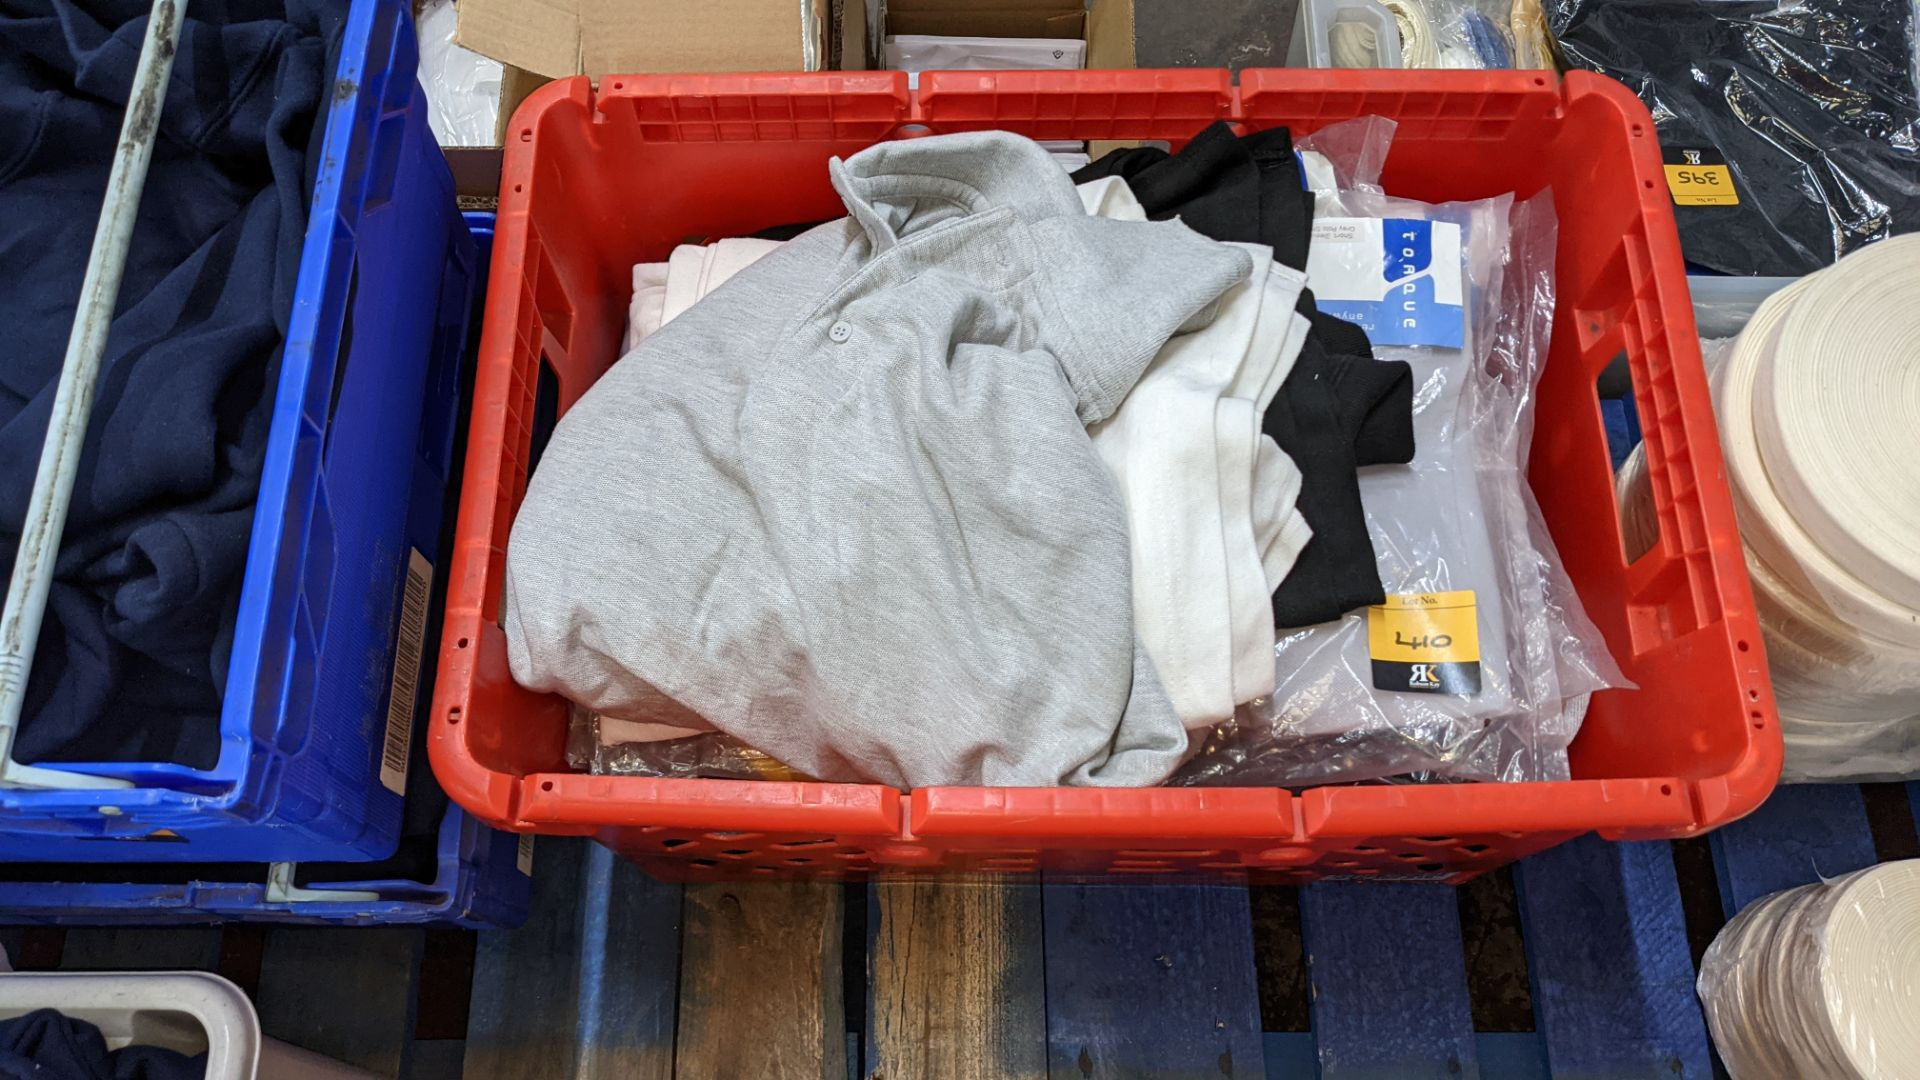 Quantity of assorted polo shirts & similar - the contents of 1 large crate - Image 2 of 6